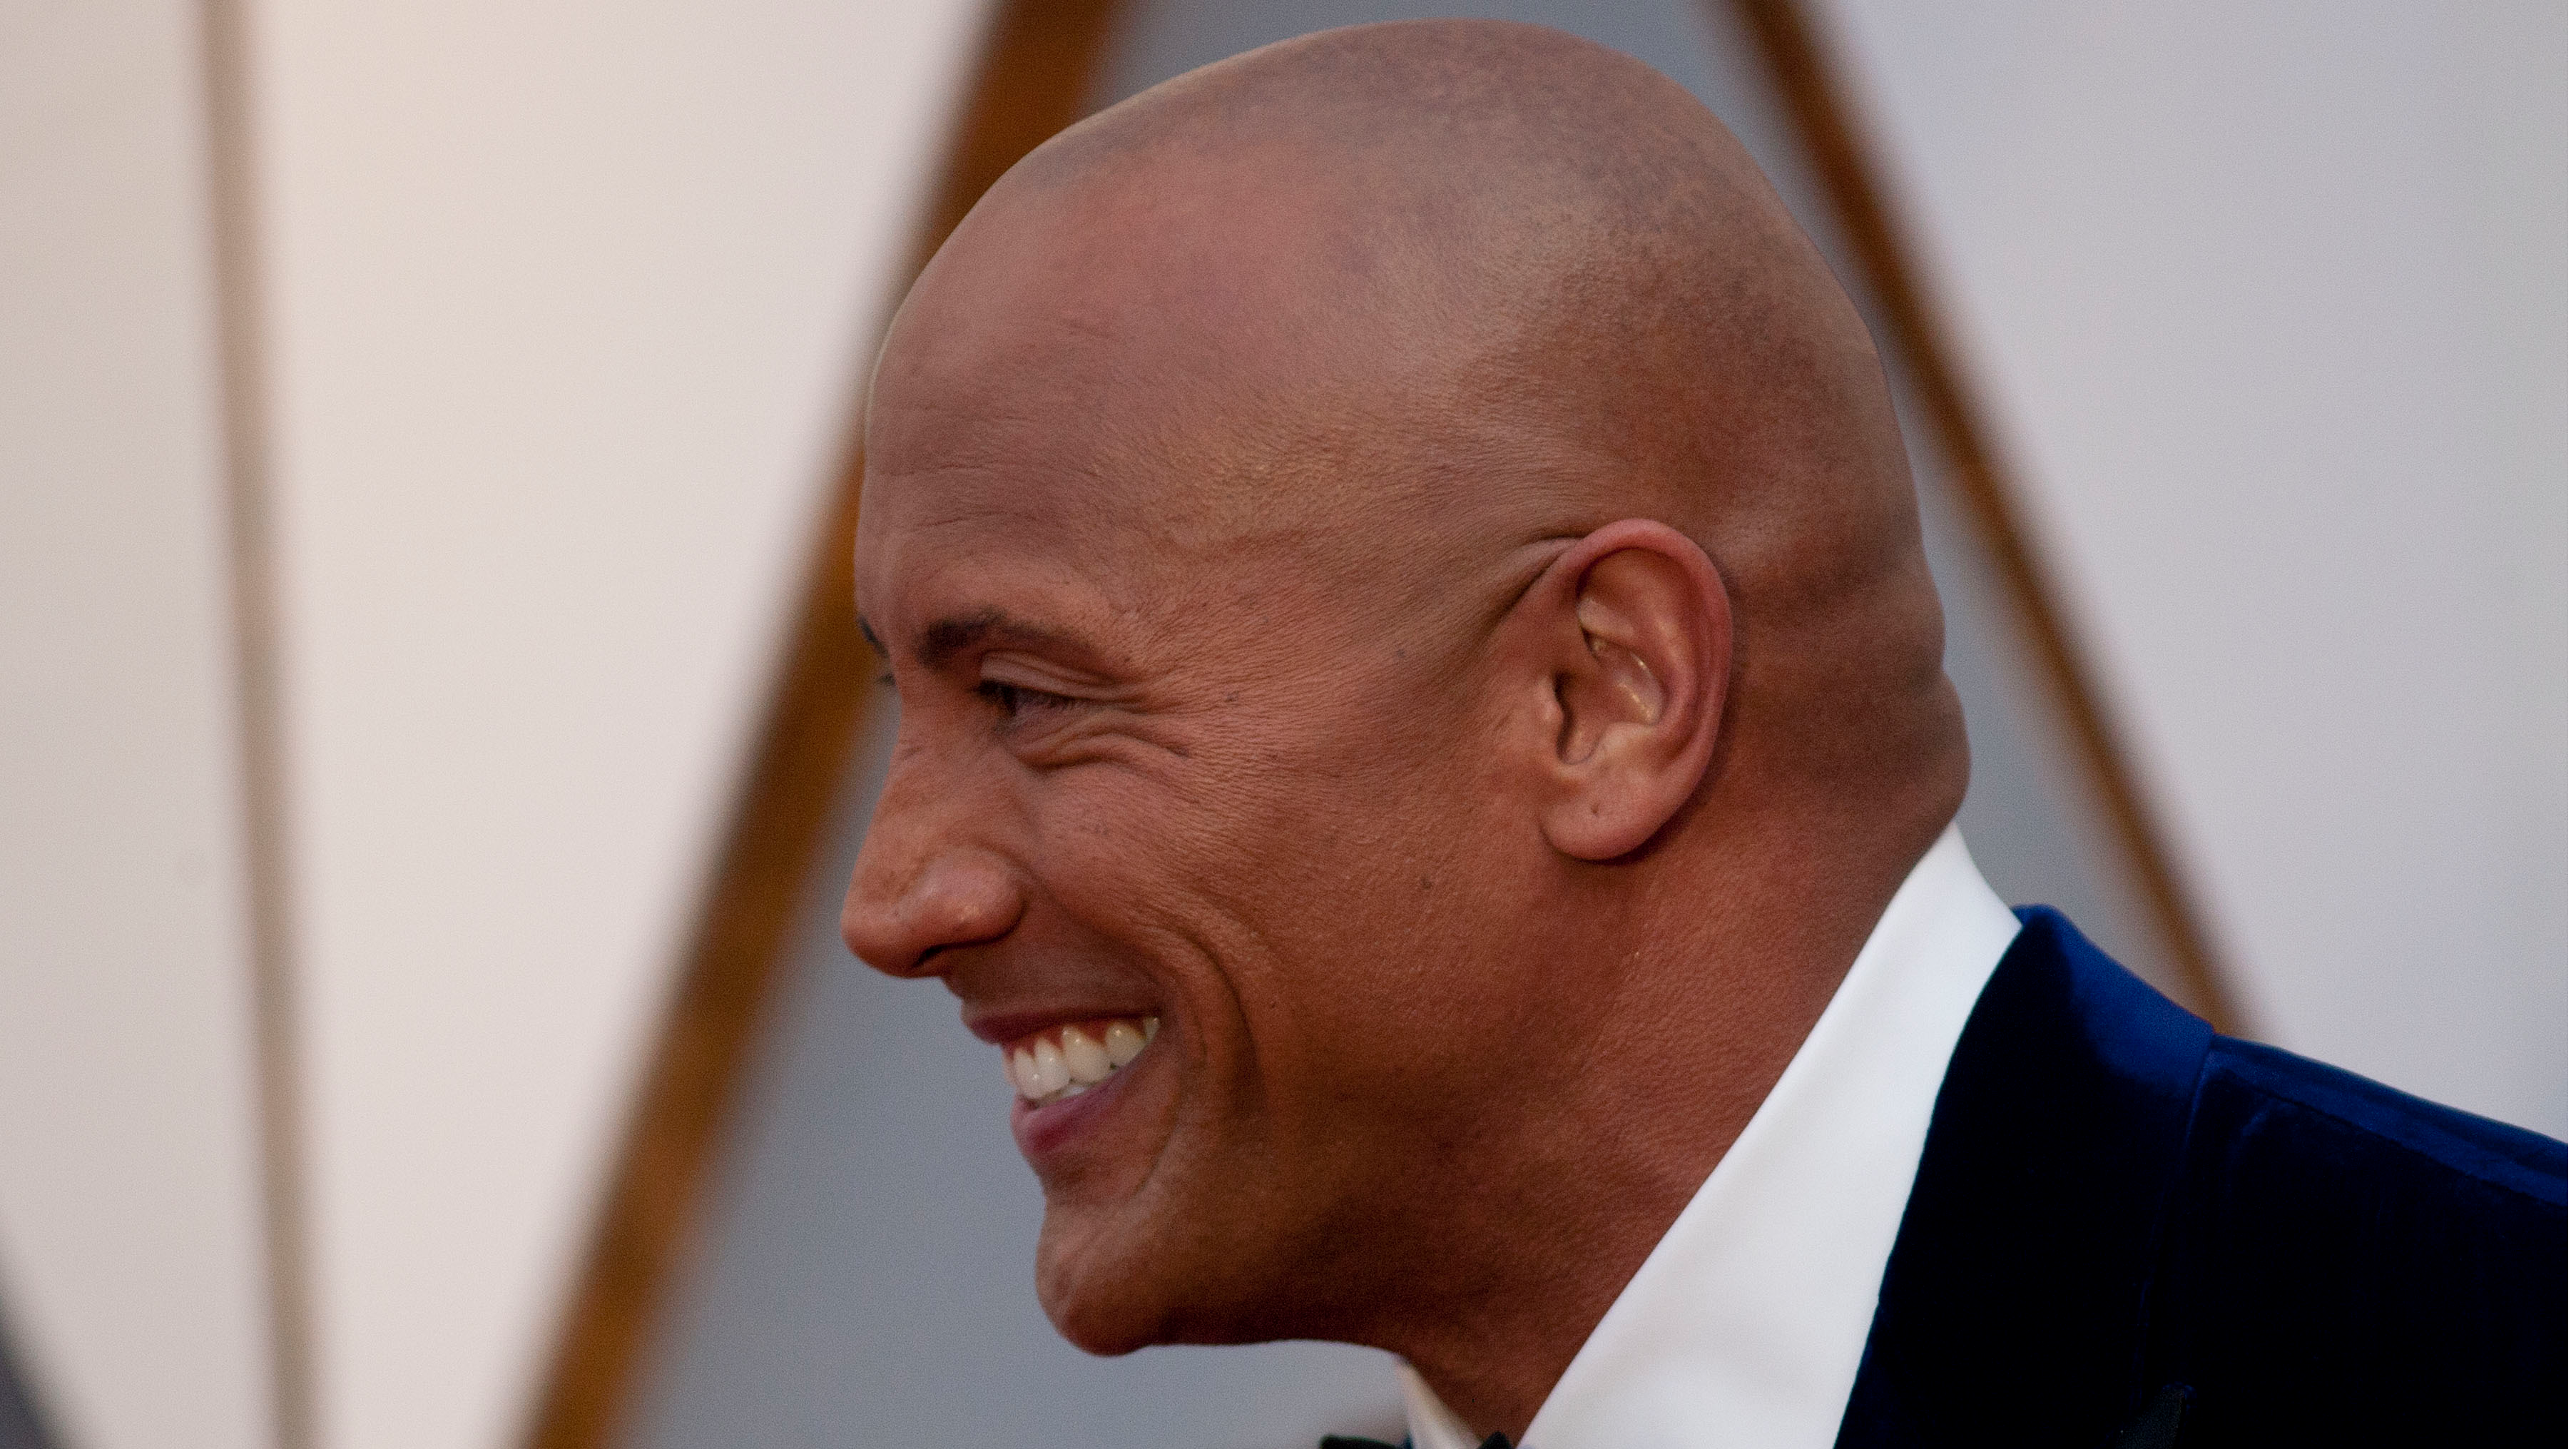 People Can't Get Over The Rock's New Beard